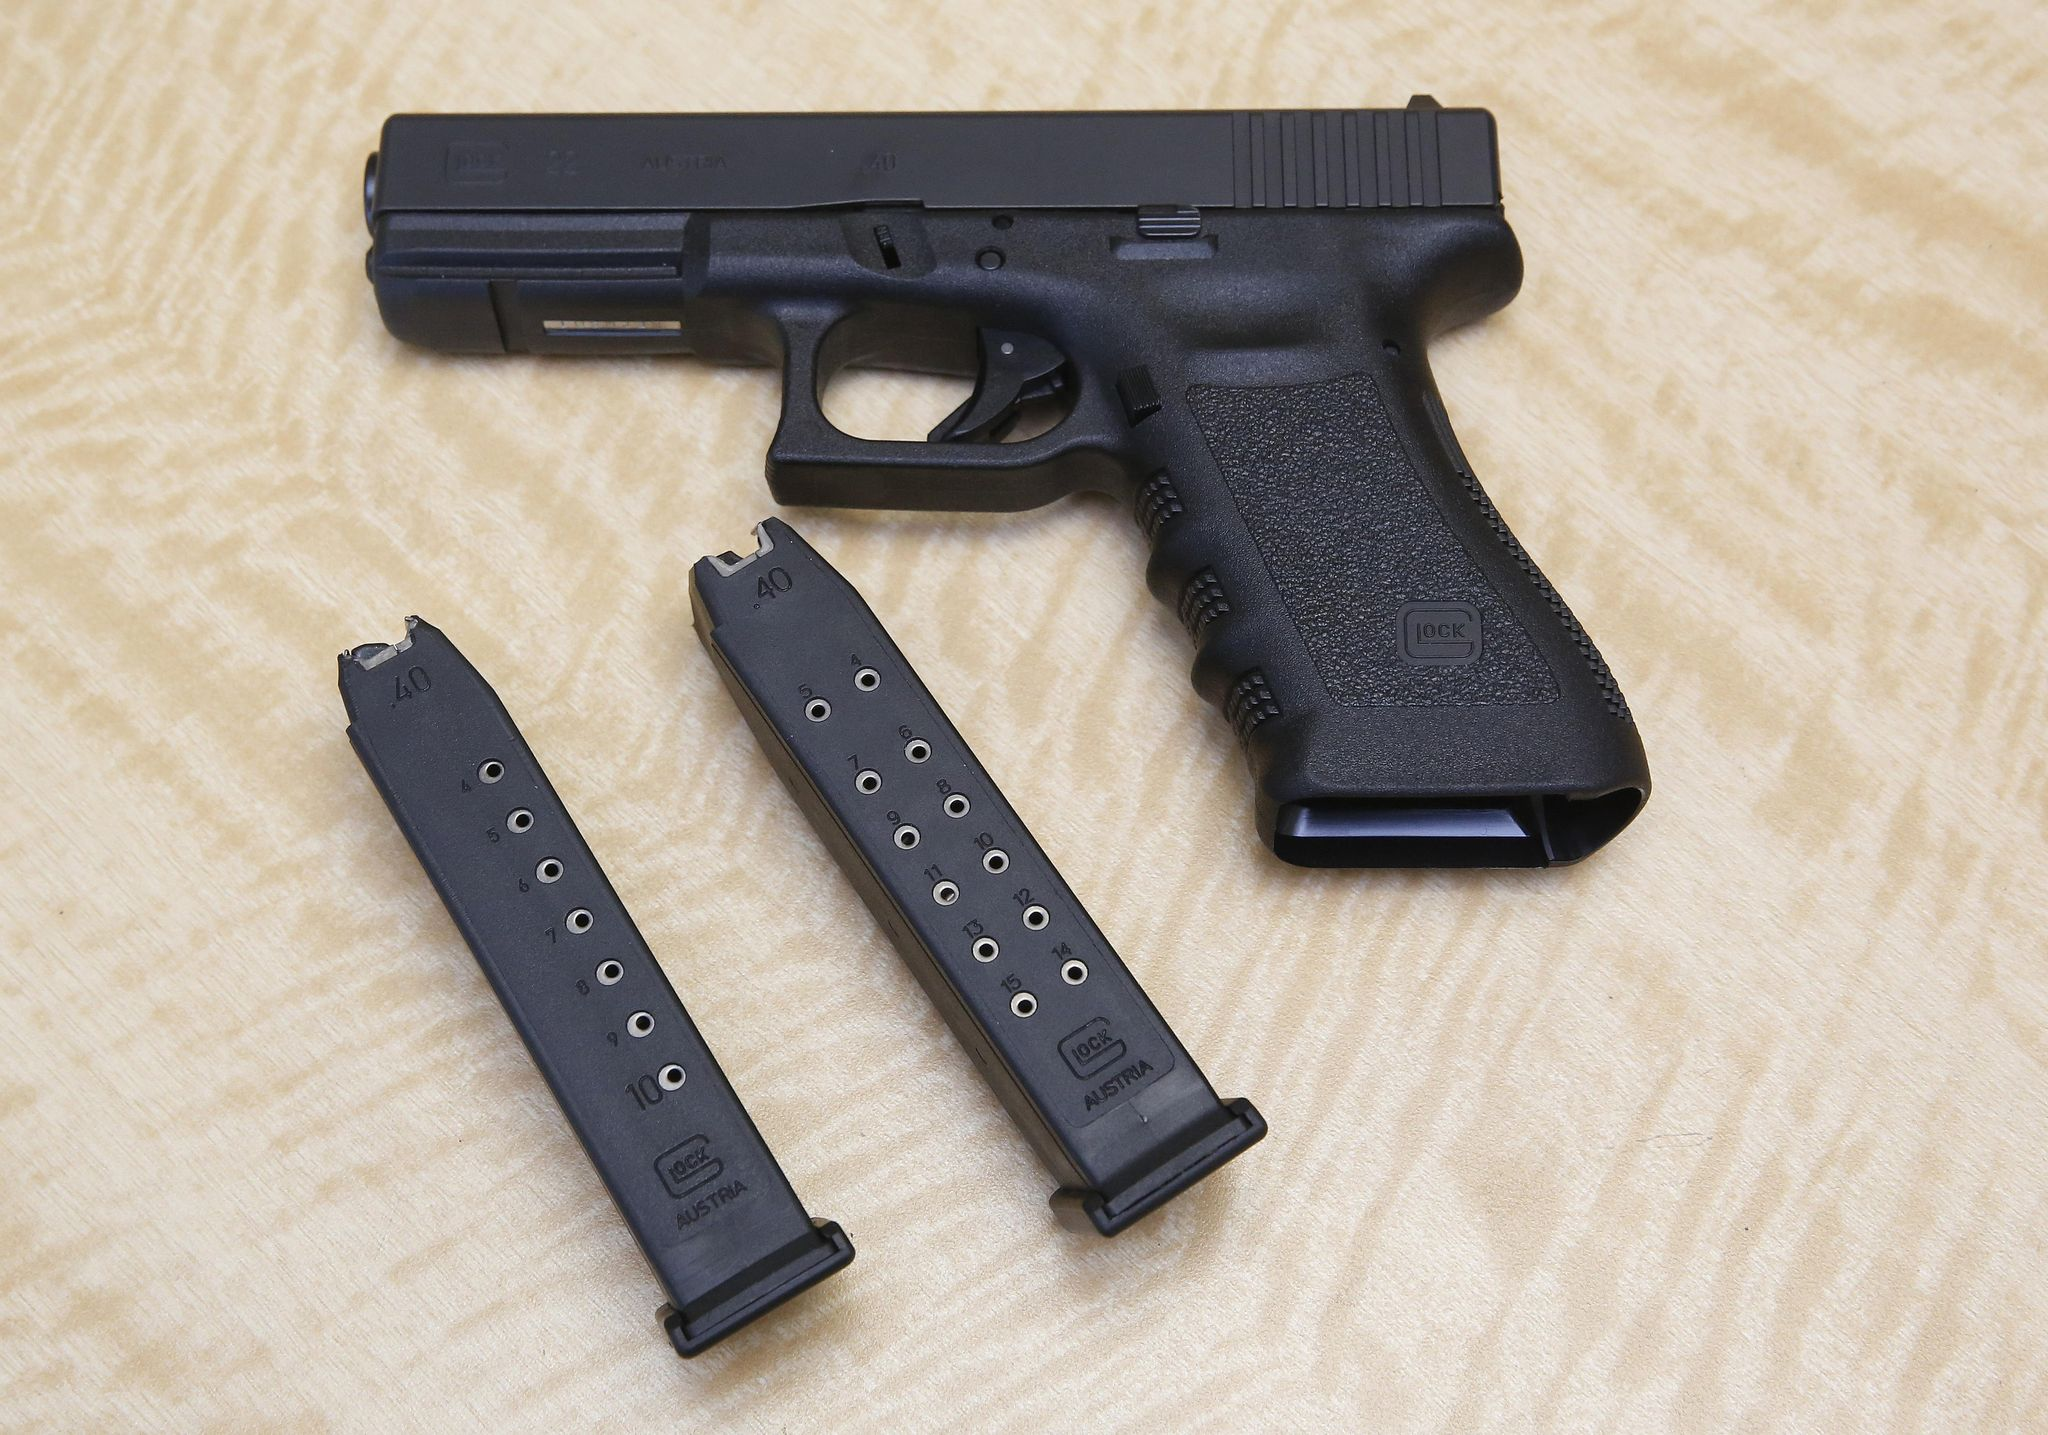 Federal appeals court upholds New Jersey's law limiting gun magazine capacity